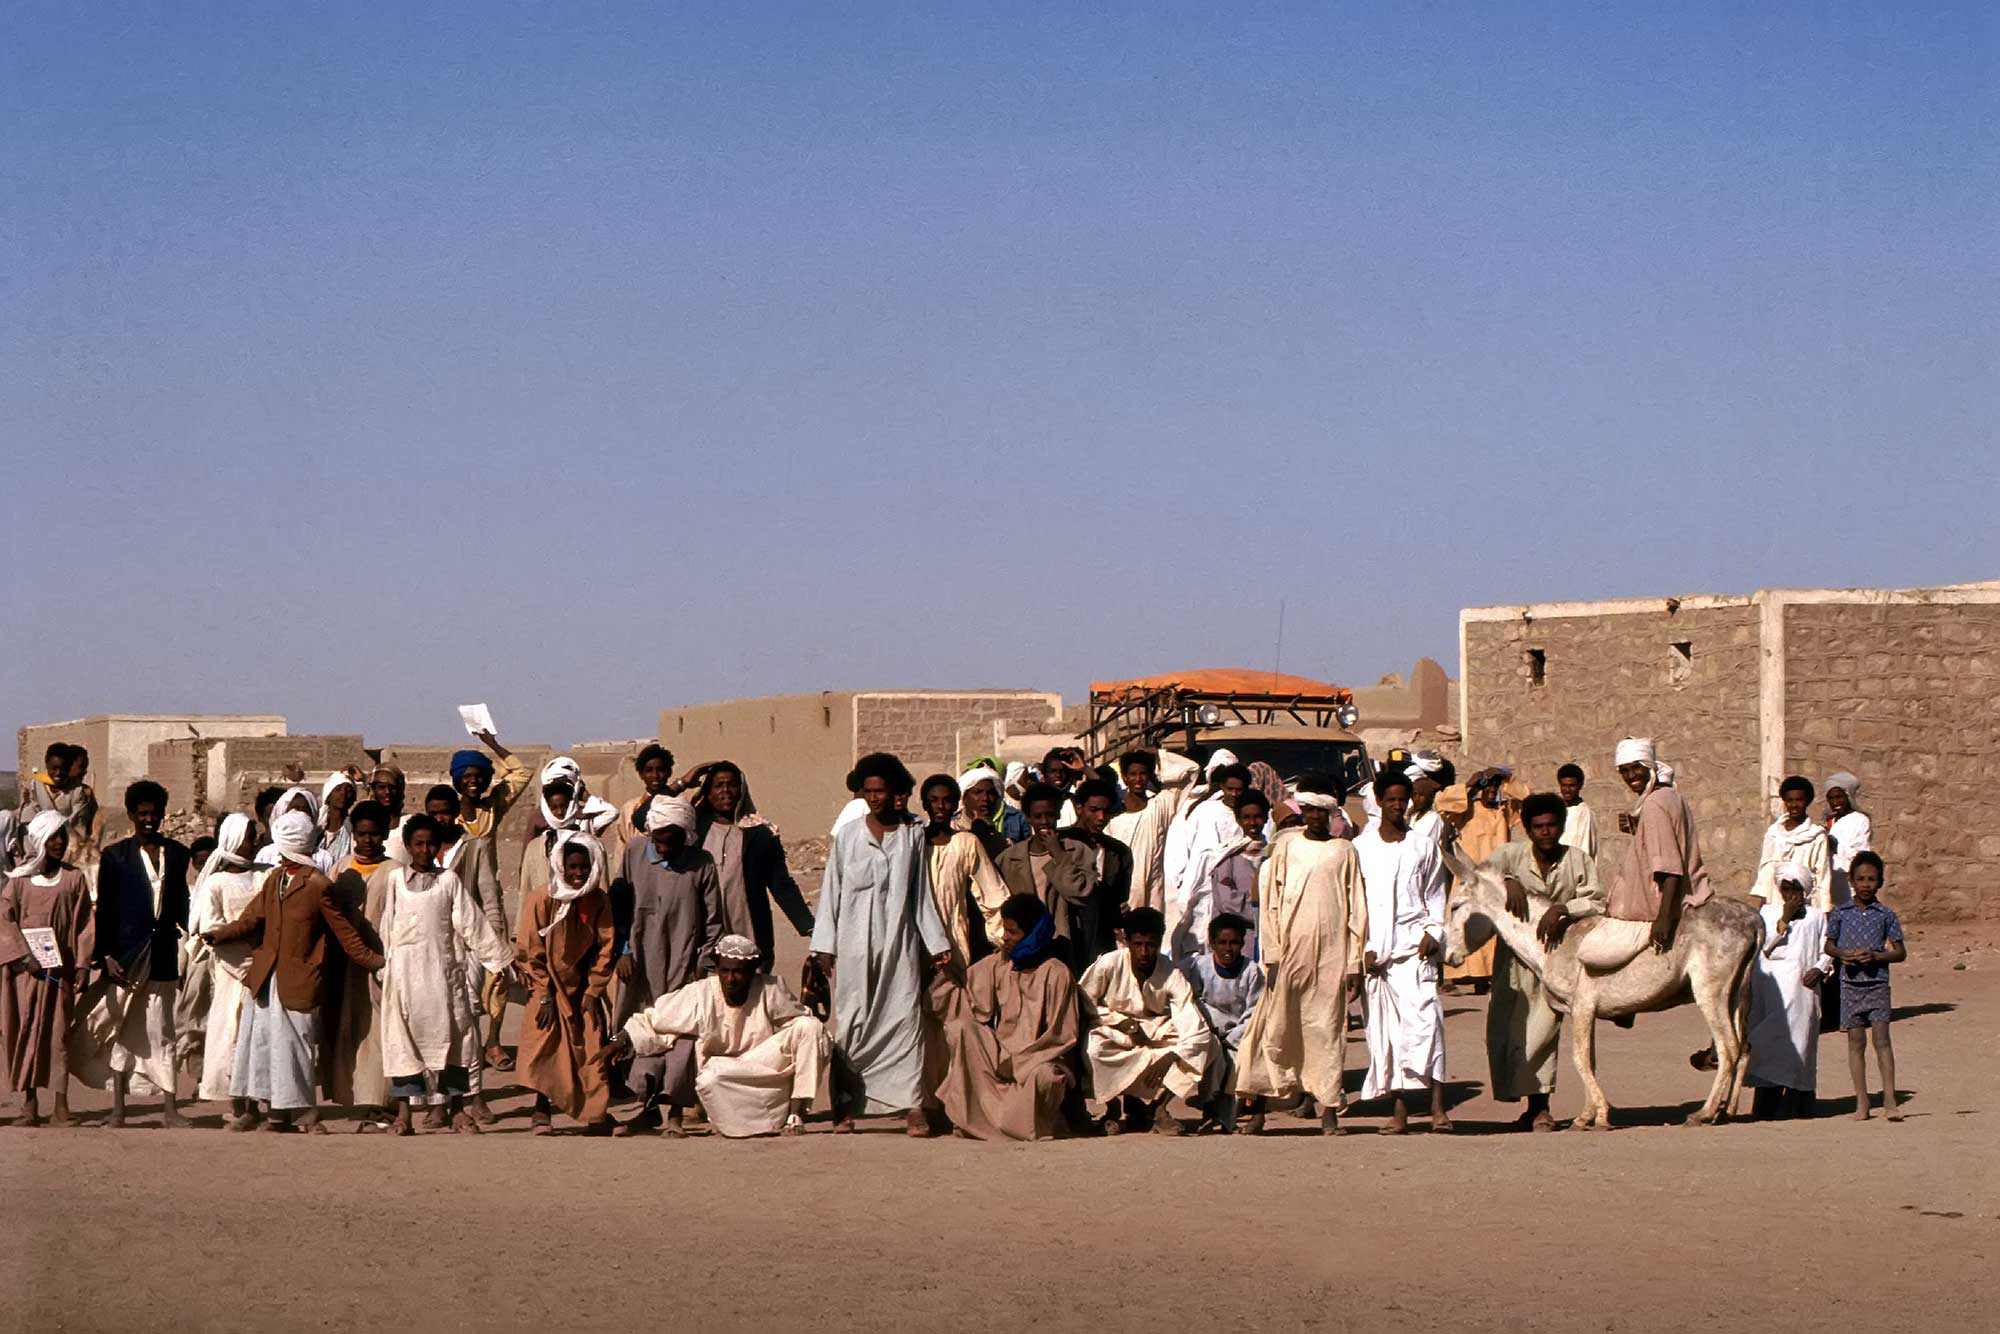 crowd-people-morocco-africa